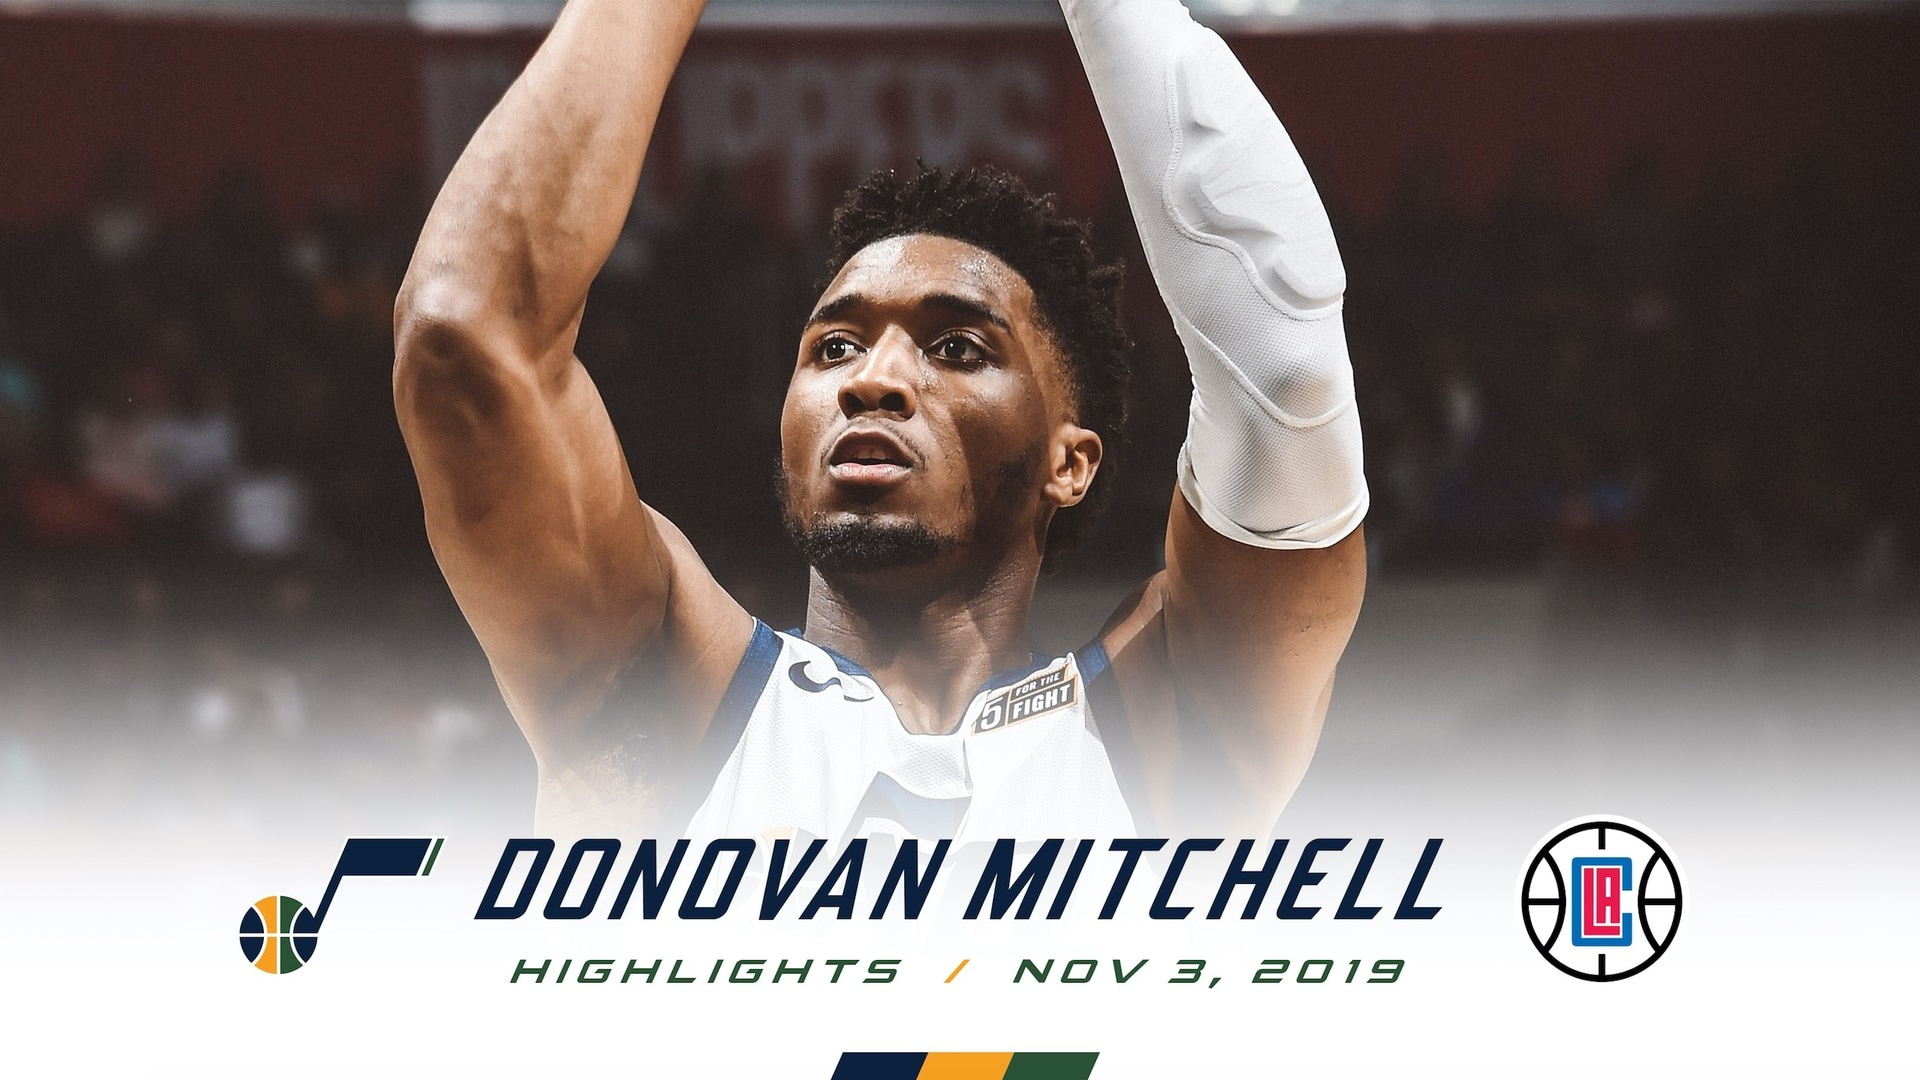 Highlights: Donovan Mitchell—36 points, 6 assists